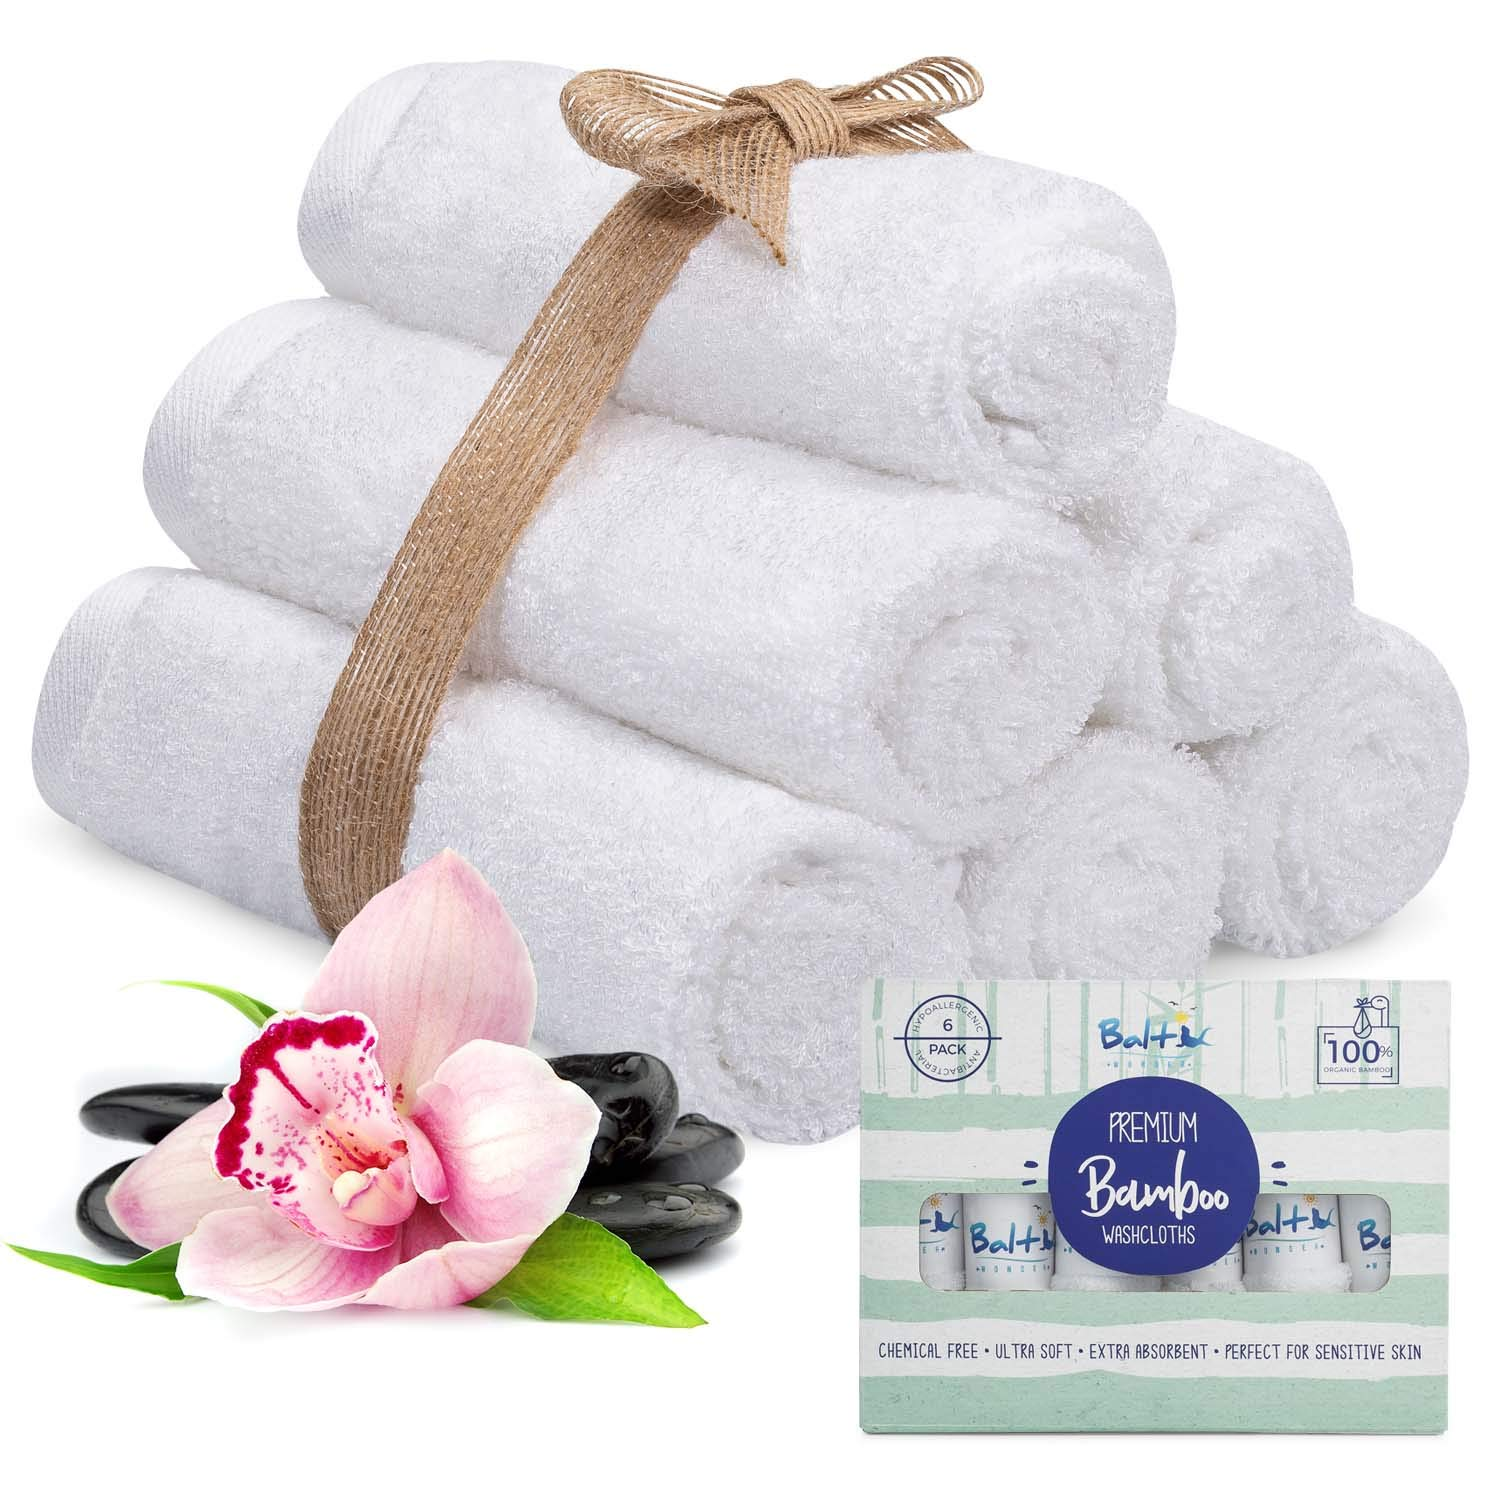 Baby Washcloths – Organic Bamboo With A Soft Cotton blend. Towel, Ultra Soft and Absorbent, Natural Reusable Wipes Perfect for Sensitive Skin and Newborn Bath, Ideal Baby Registry and Baby Shower Gift